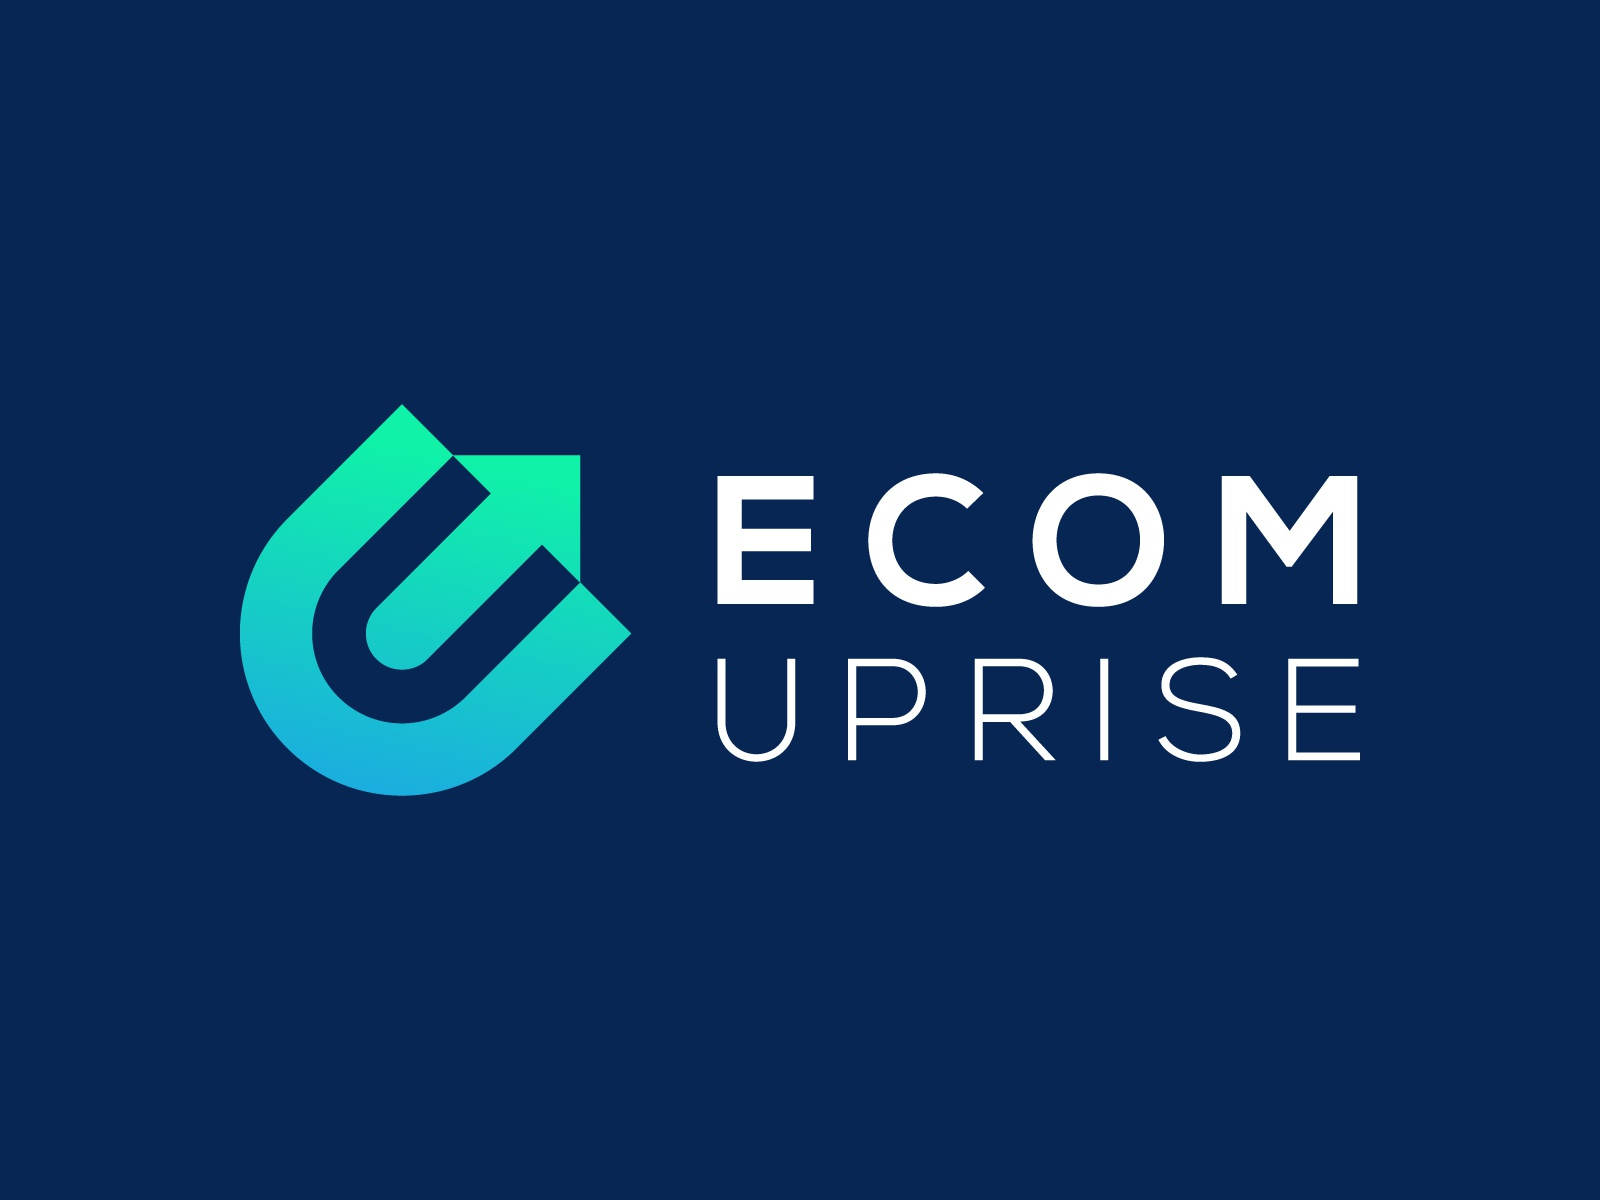 Ecom Uprise - Logo Design ecom uprise identity negative space mark smart logo logotype software strategy technology lettering consulting wordmark forward progress leader arrow rise consult monogram icon mark market place marketplace marketing shopping shop growth progress trustworthy eu commerce e-commerce